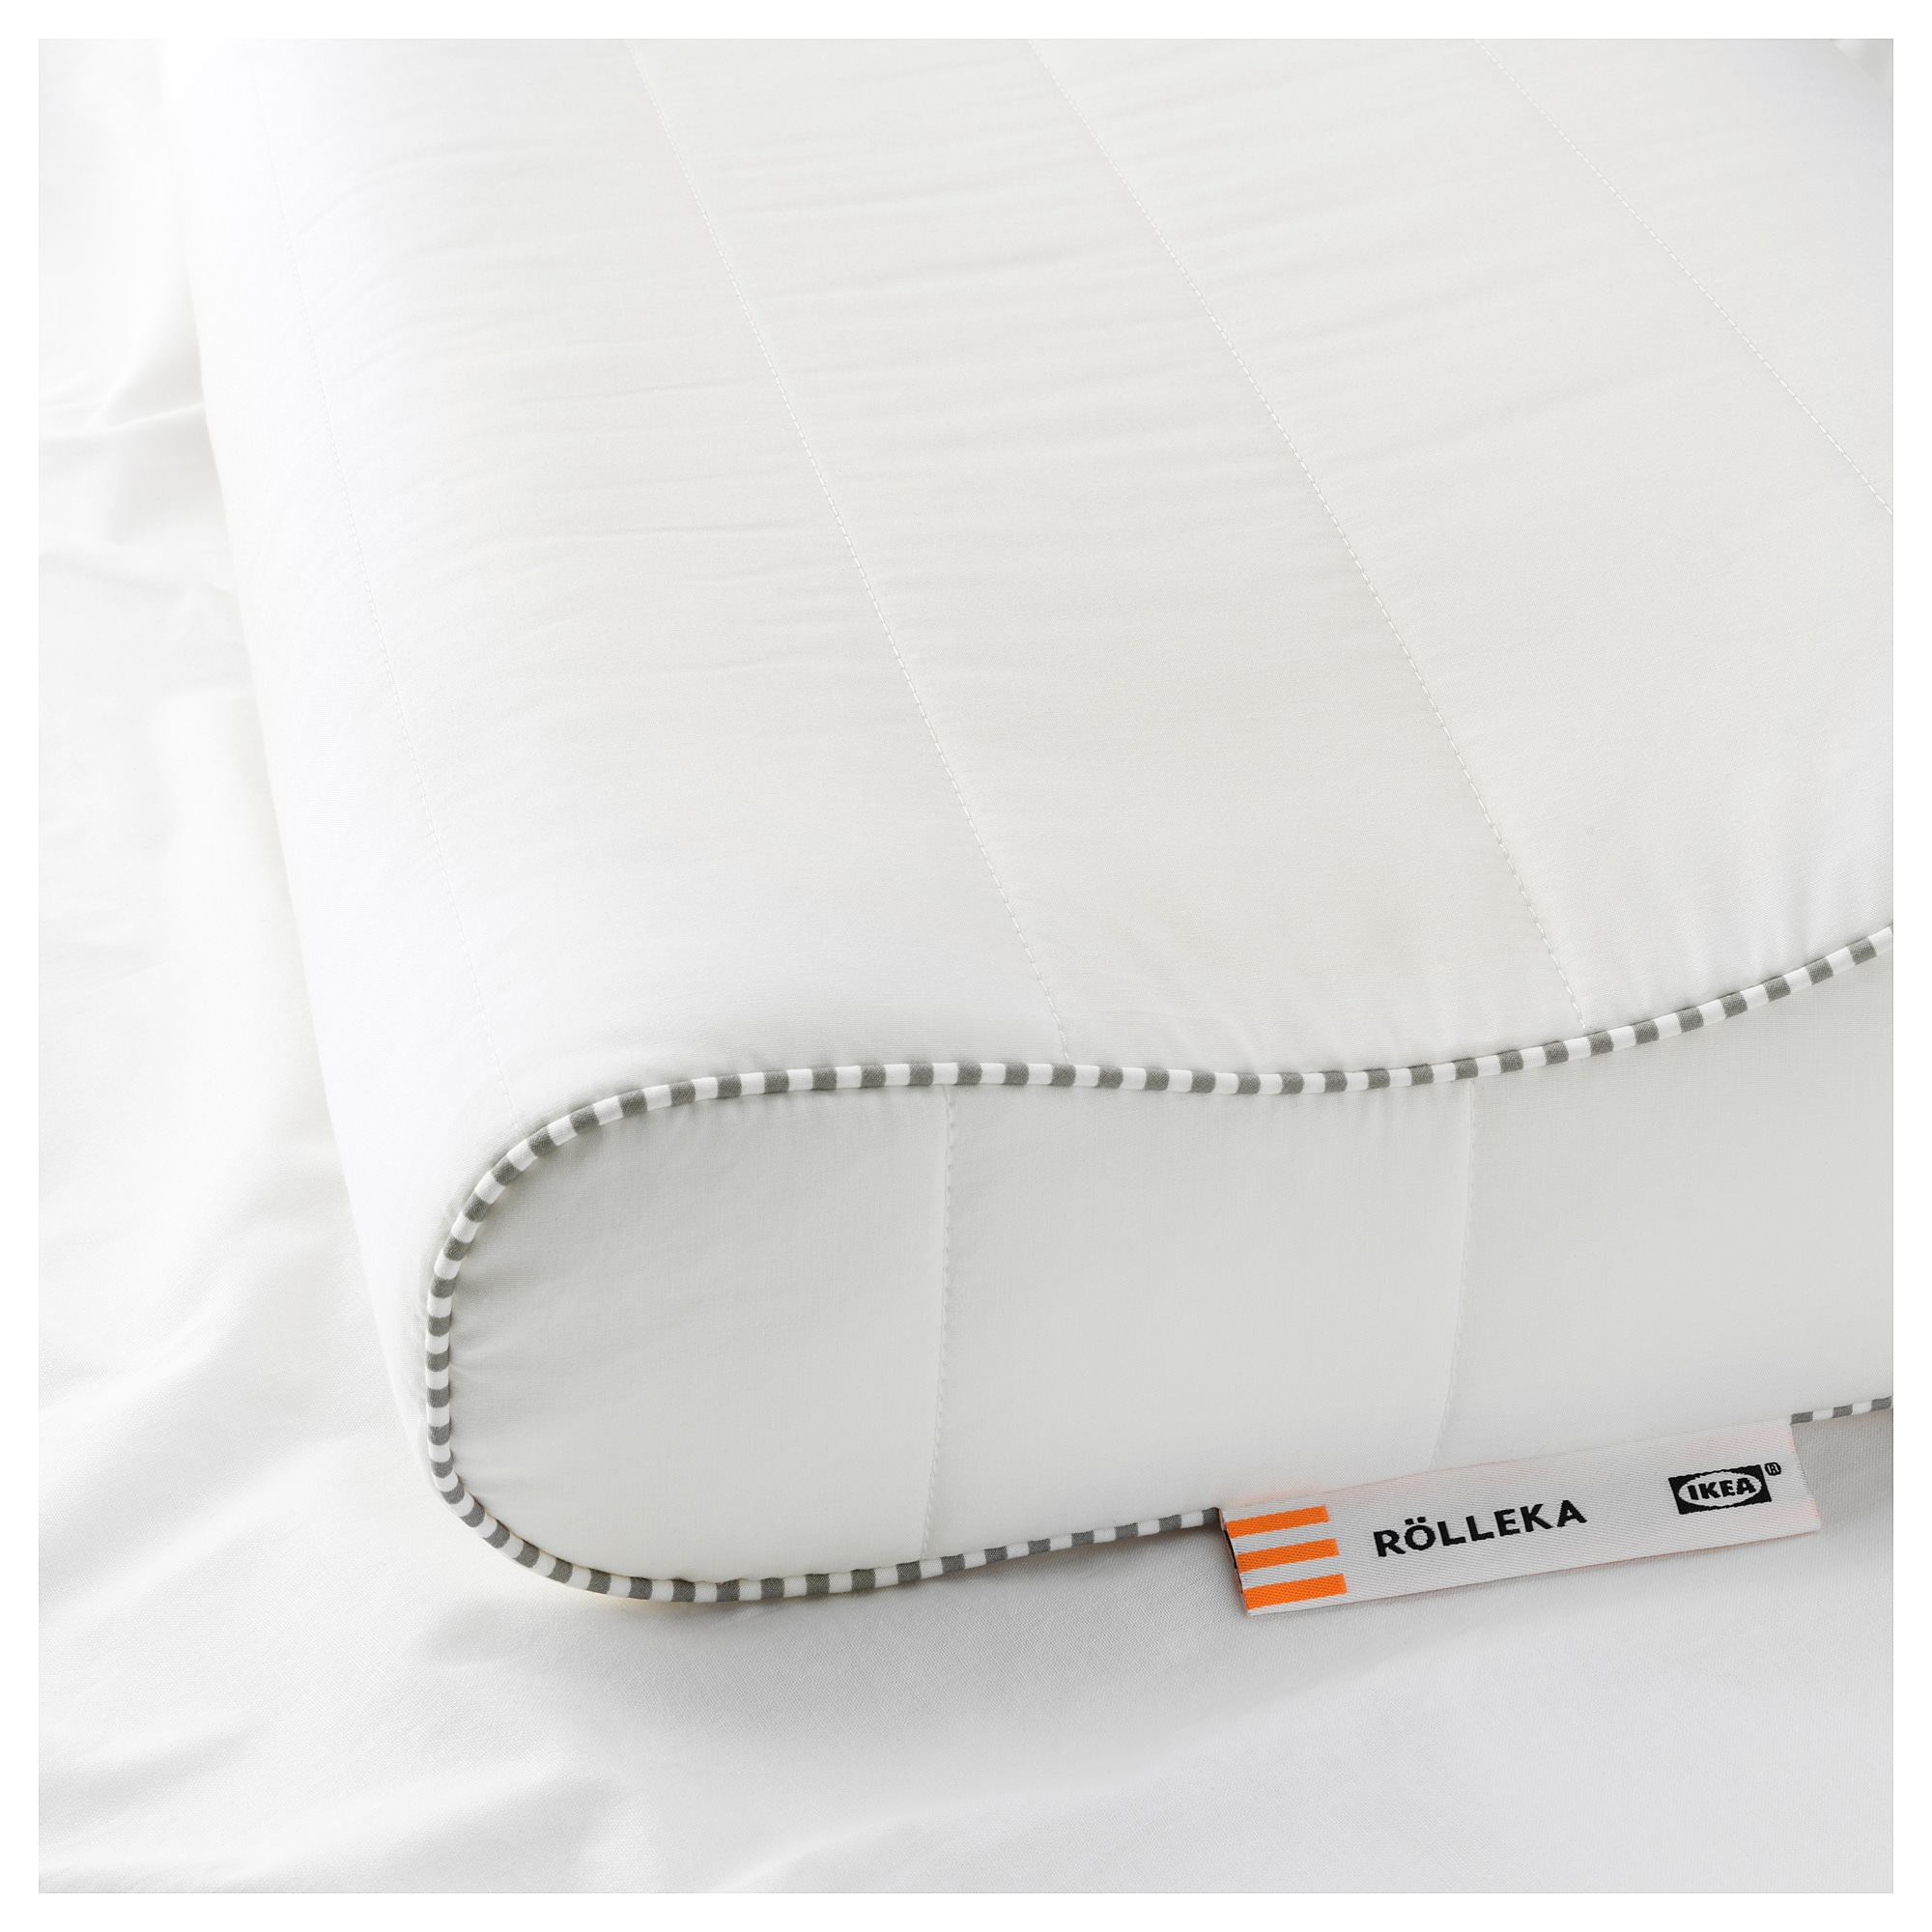 RÖlleka Memory Foam Pillow Ikea Family Member Price